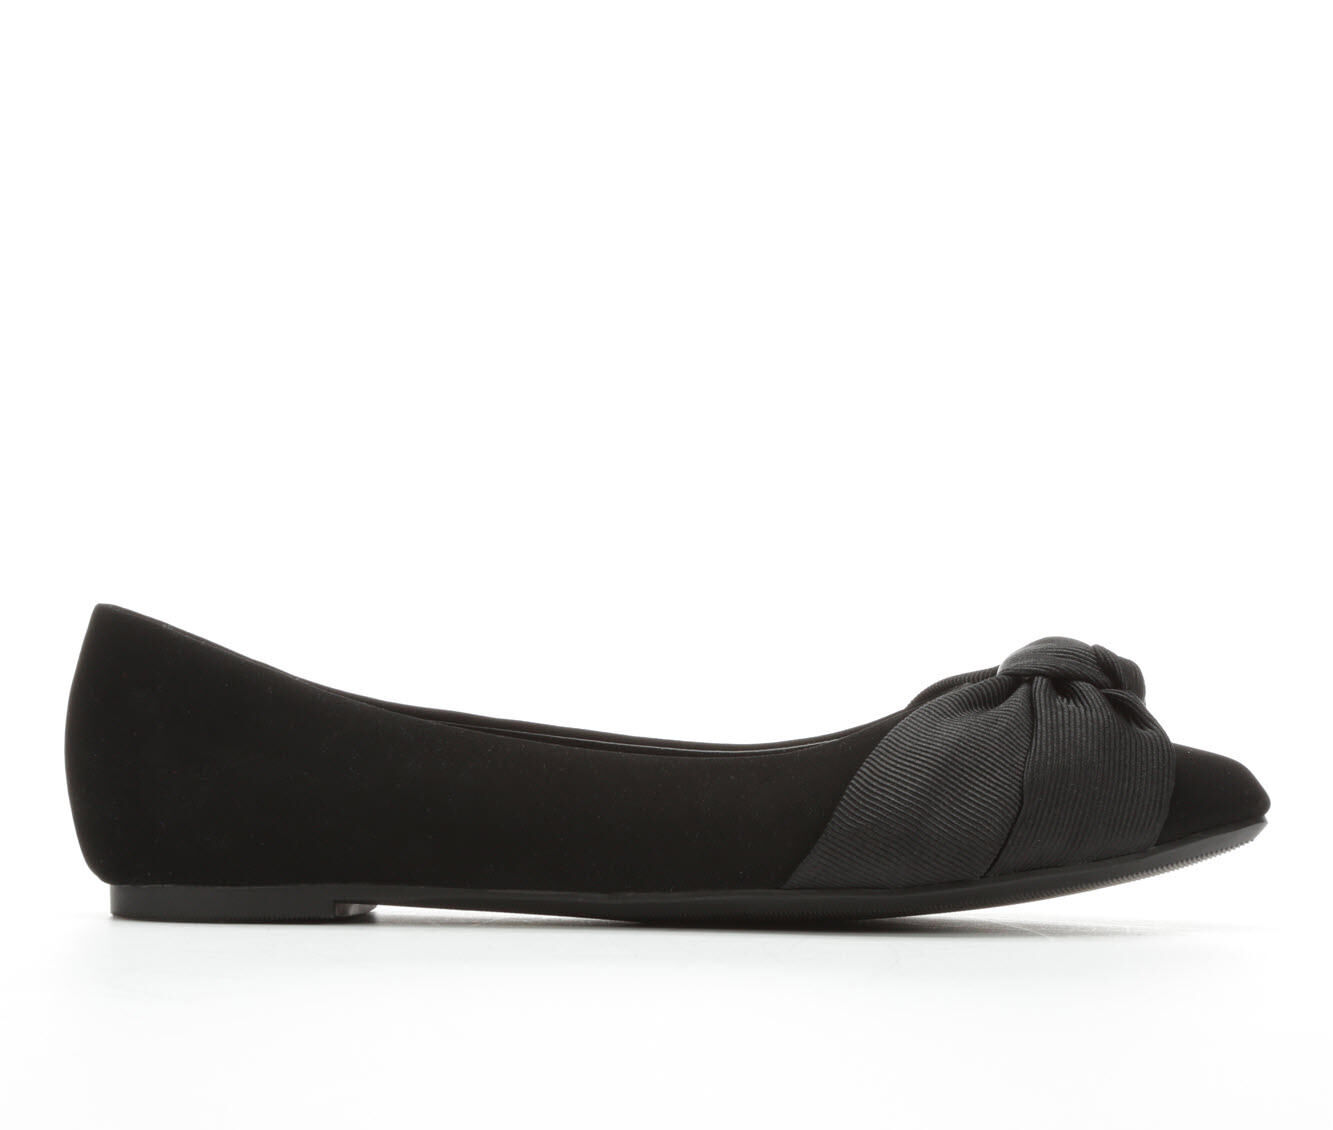 sale fashion Style Women's Y-Not Clara Flats supply cheap online discount best prices cheap sale visit new M4DEP